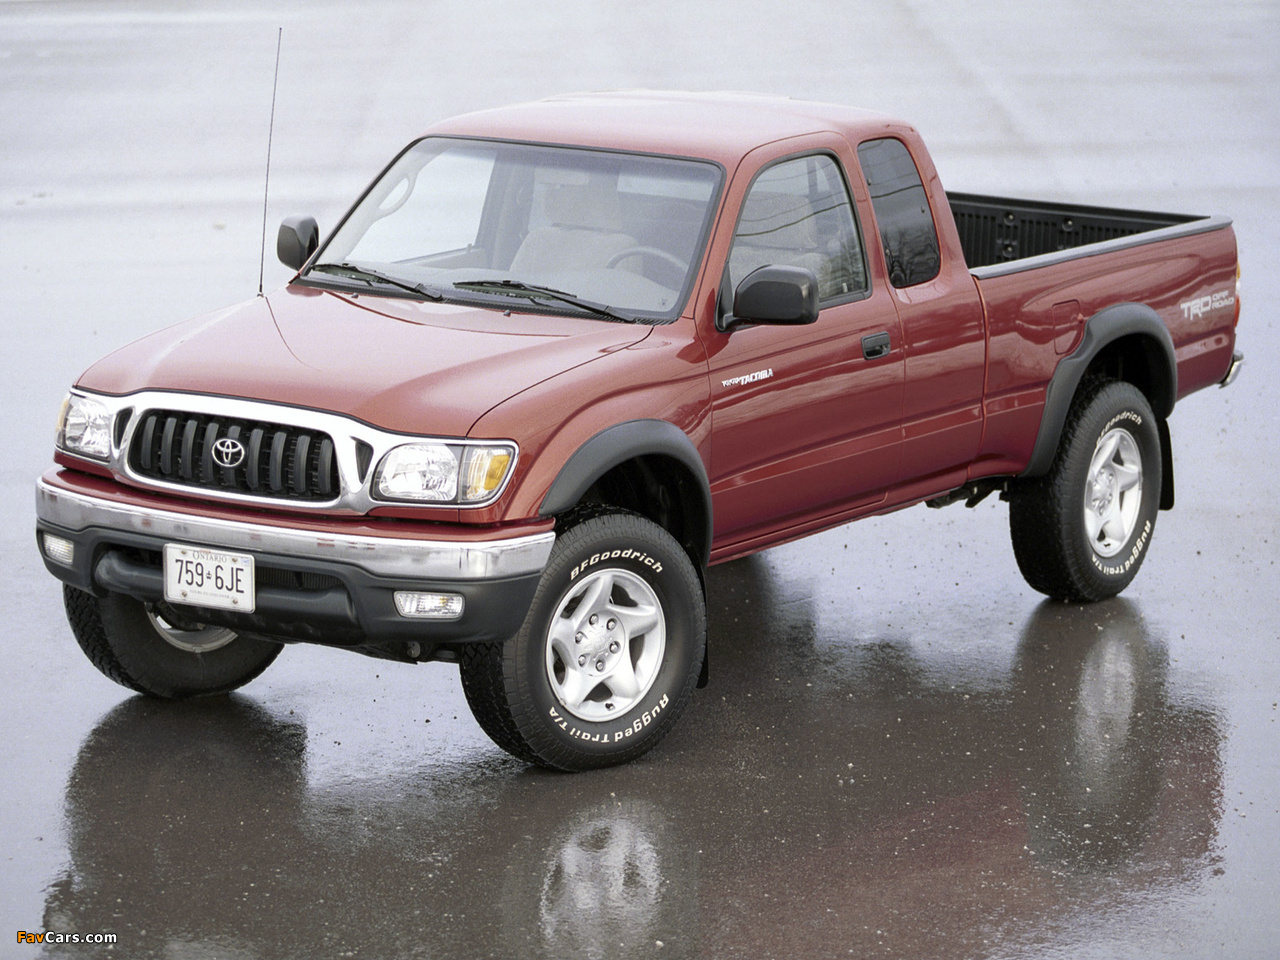 images of trd toyota tacoma prerunner xtracab off road edition 2001 04 1280x960. Black Bedroom Furniture Sets. Home Design Ideas